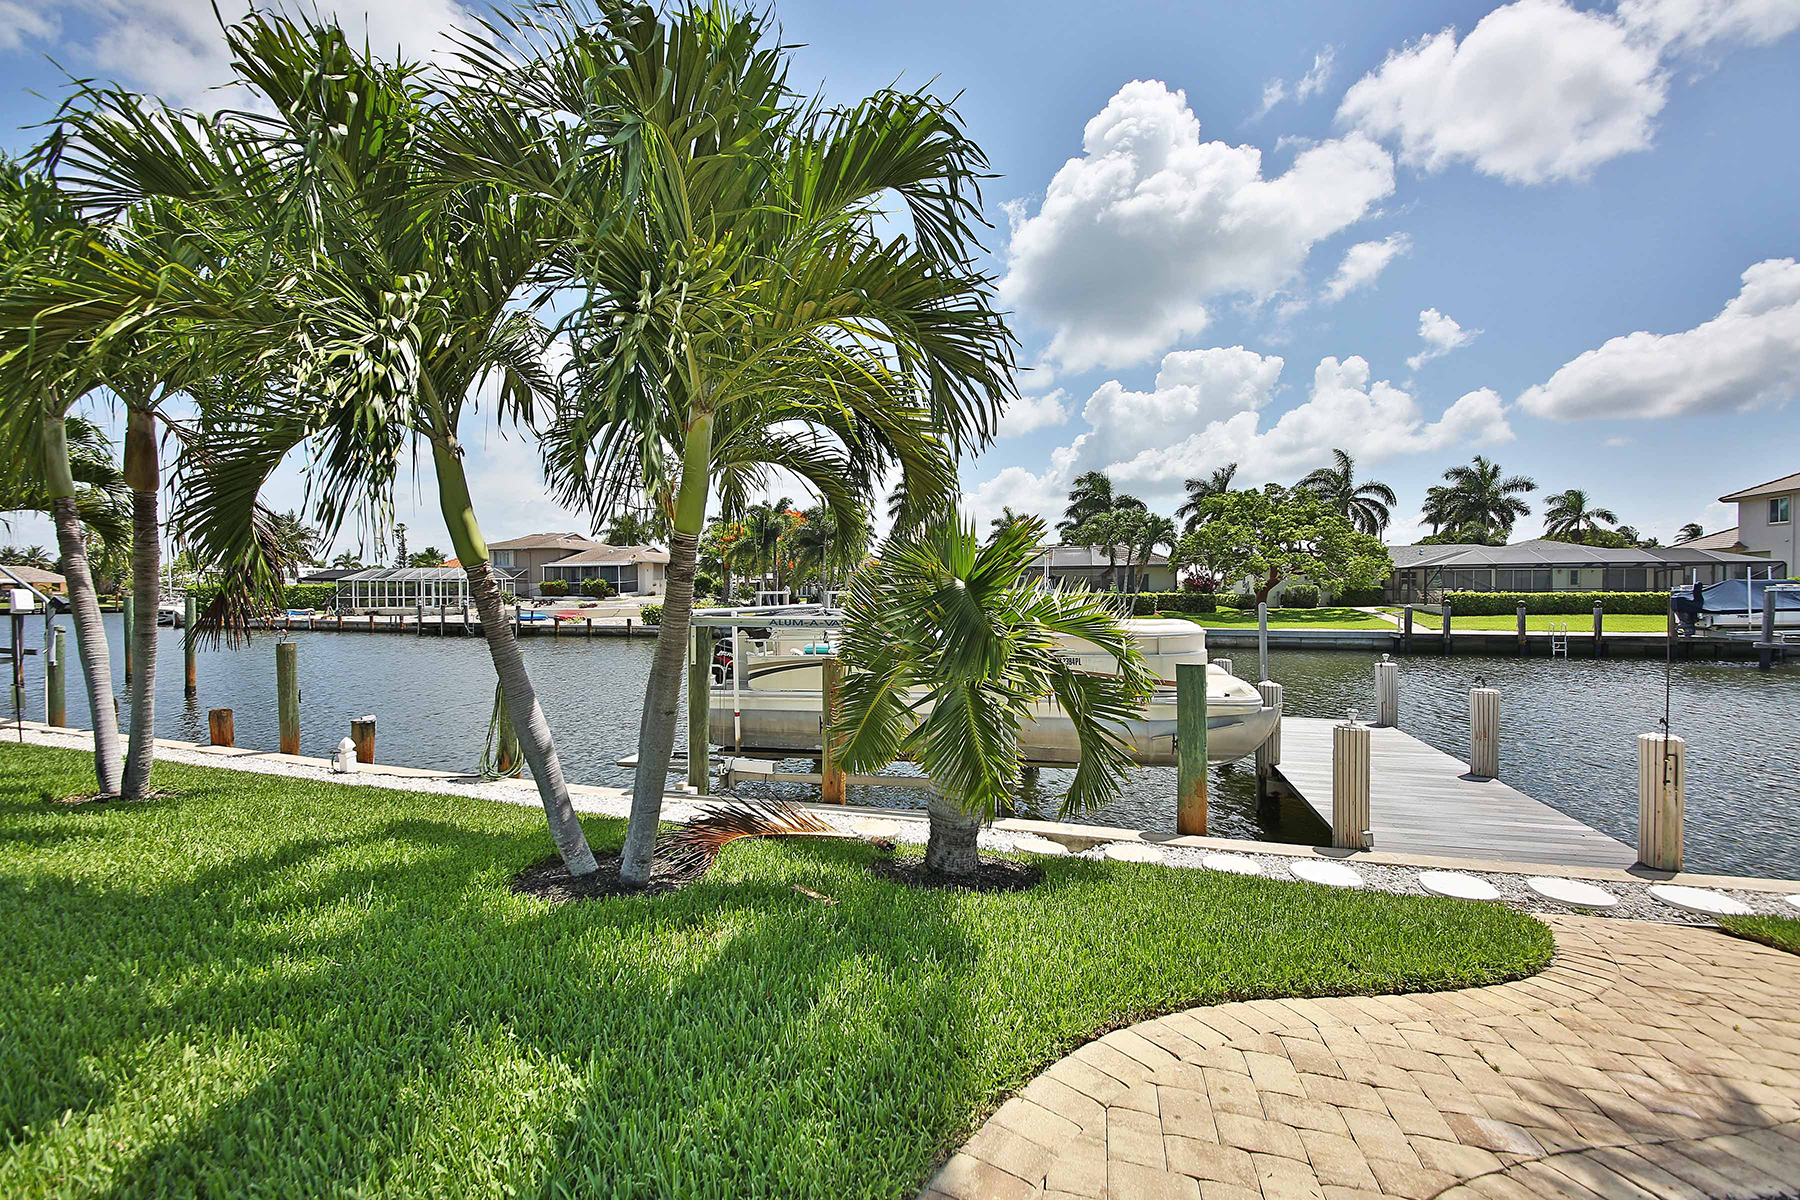 Property for Sale at MARCO ISLAND 861 Chestnut Court, Marco Island, Florida 34145 United States